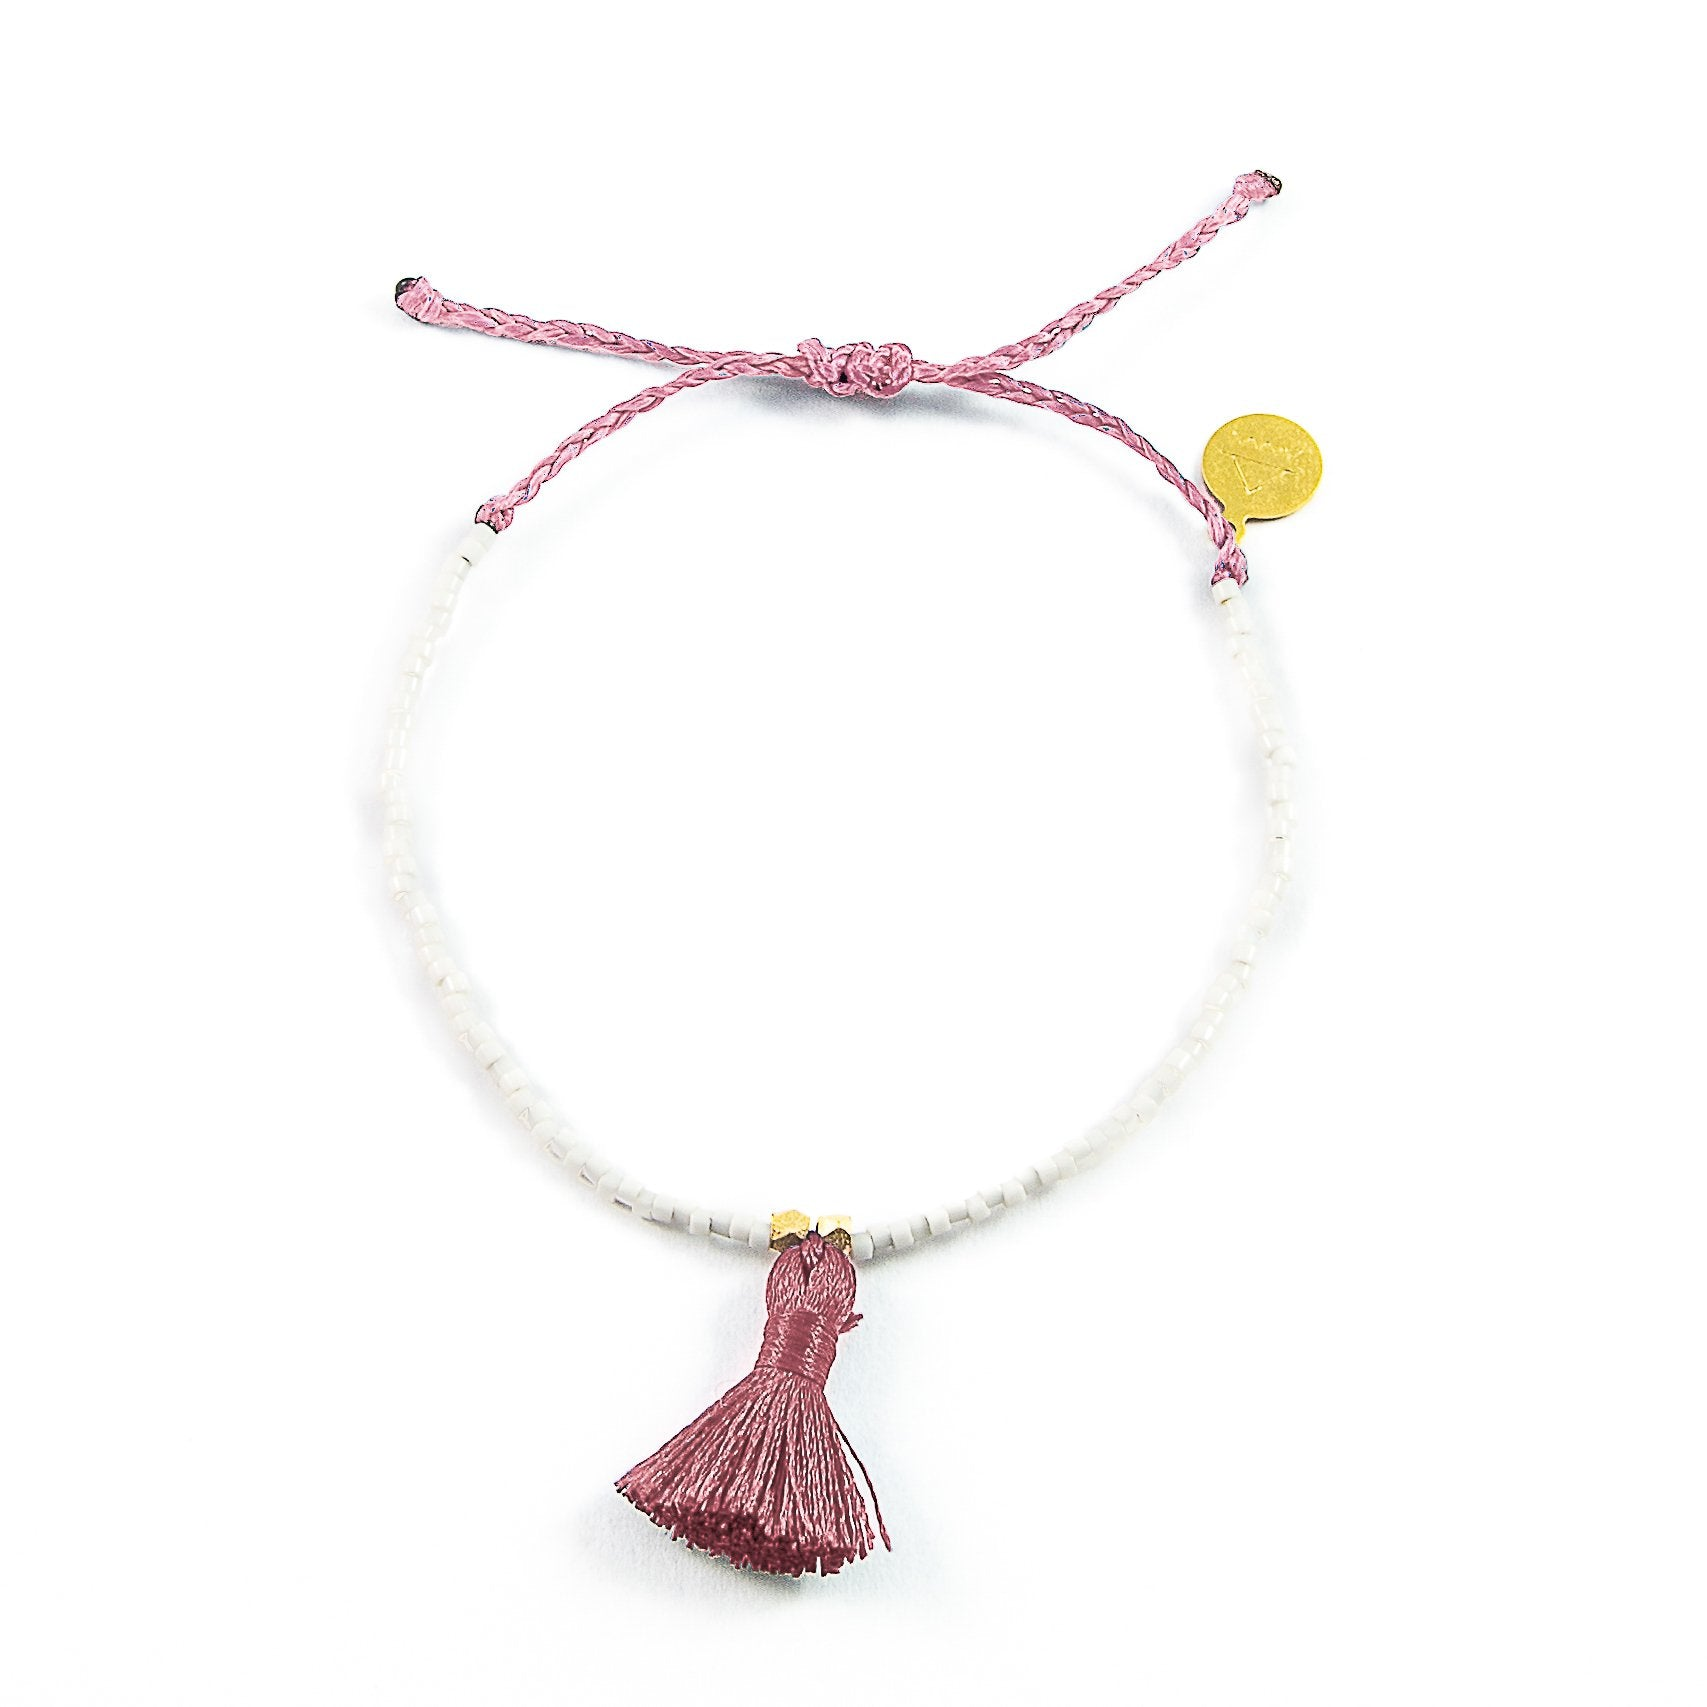 Peachy Cream w/ Rose Tassel Bracelet